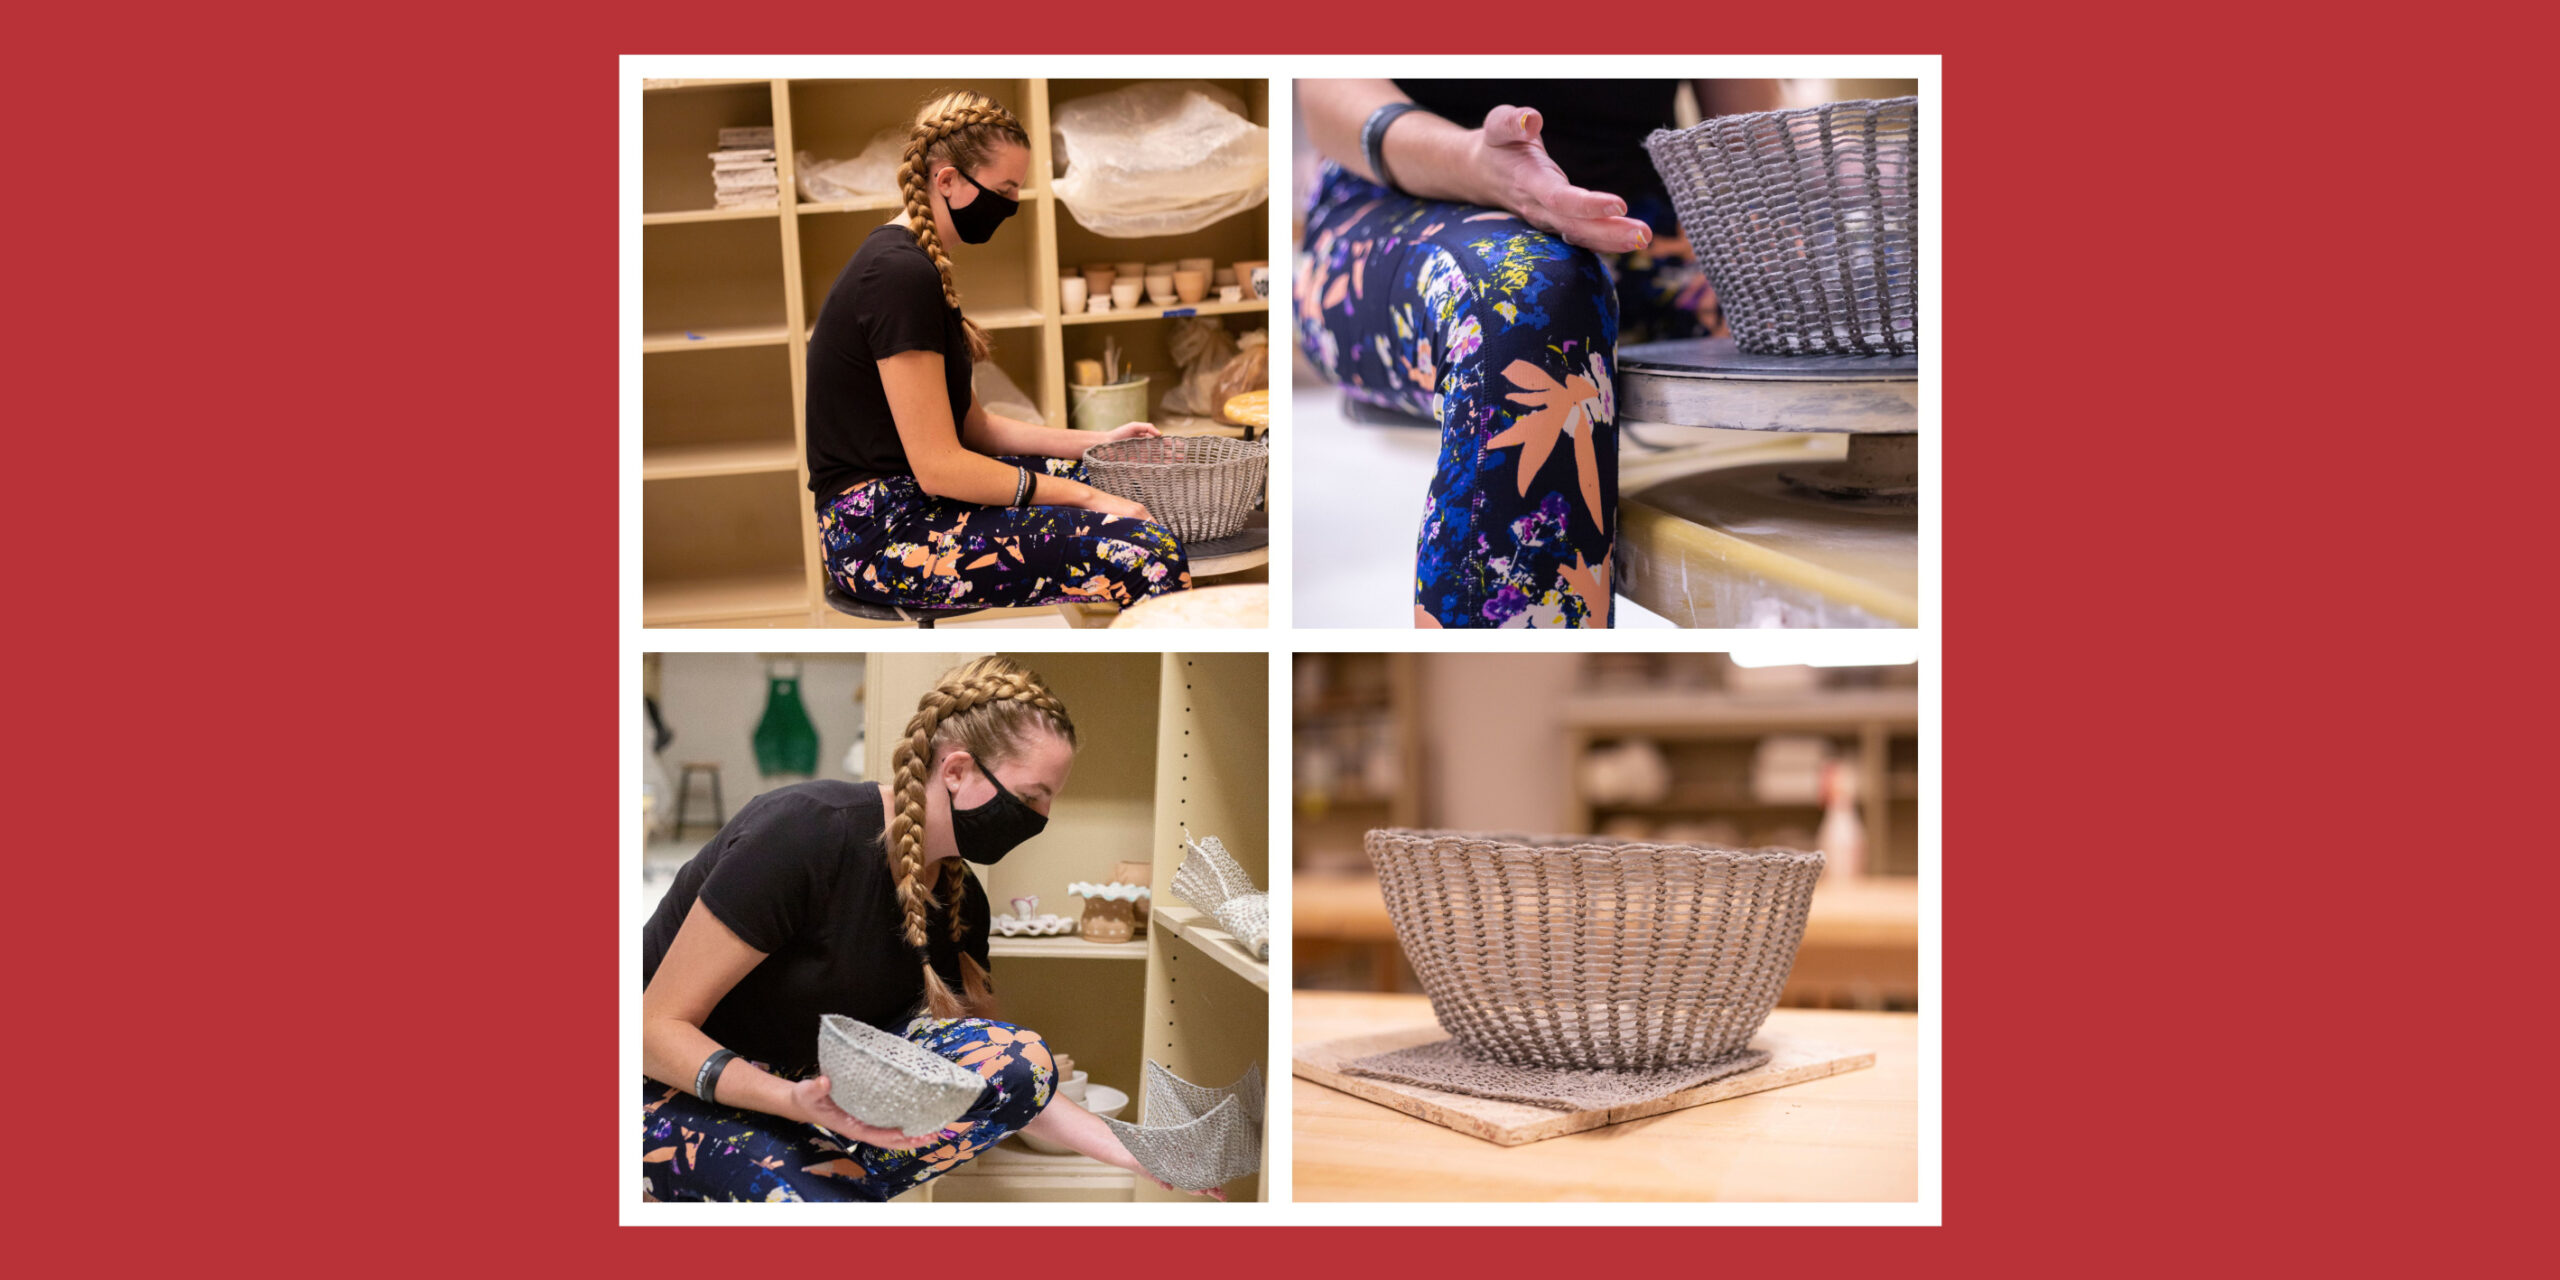 Laura working on pottery